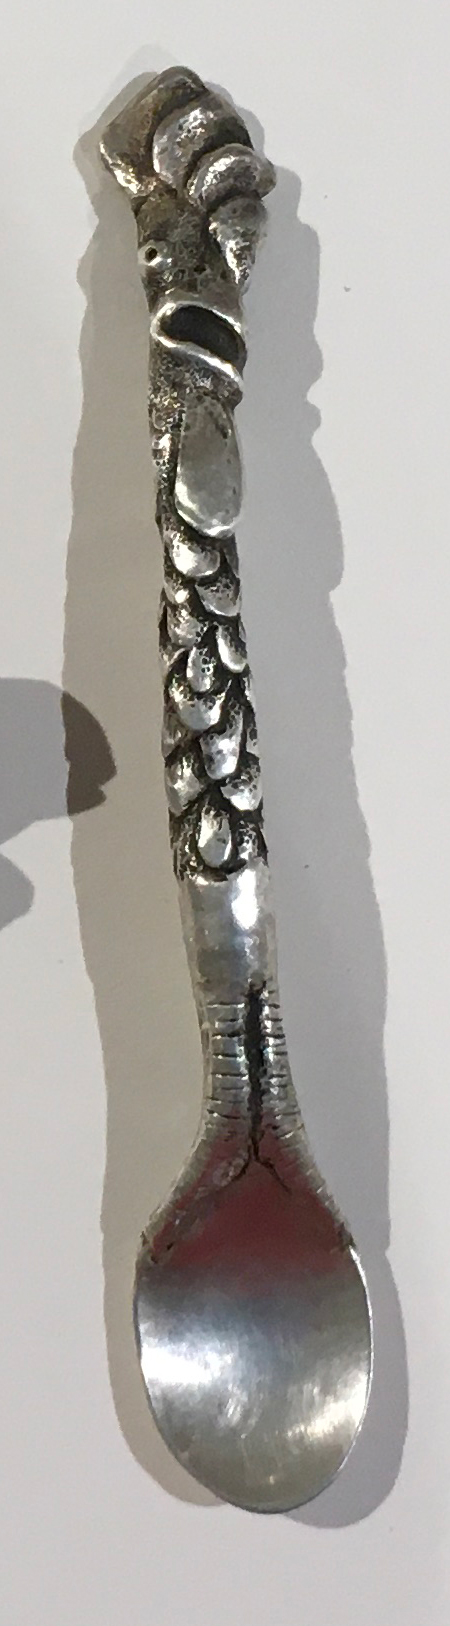 Linda Kelen, Rooster Egg Spoon, 2019, sterling silver, 5.75 inches, collection of the artist